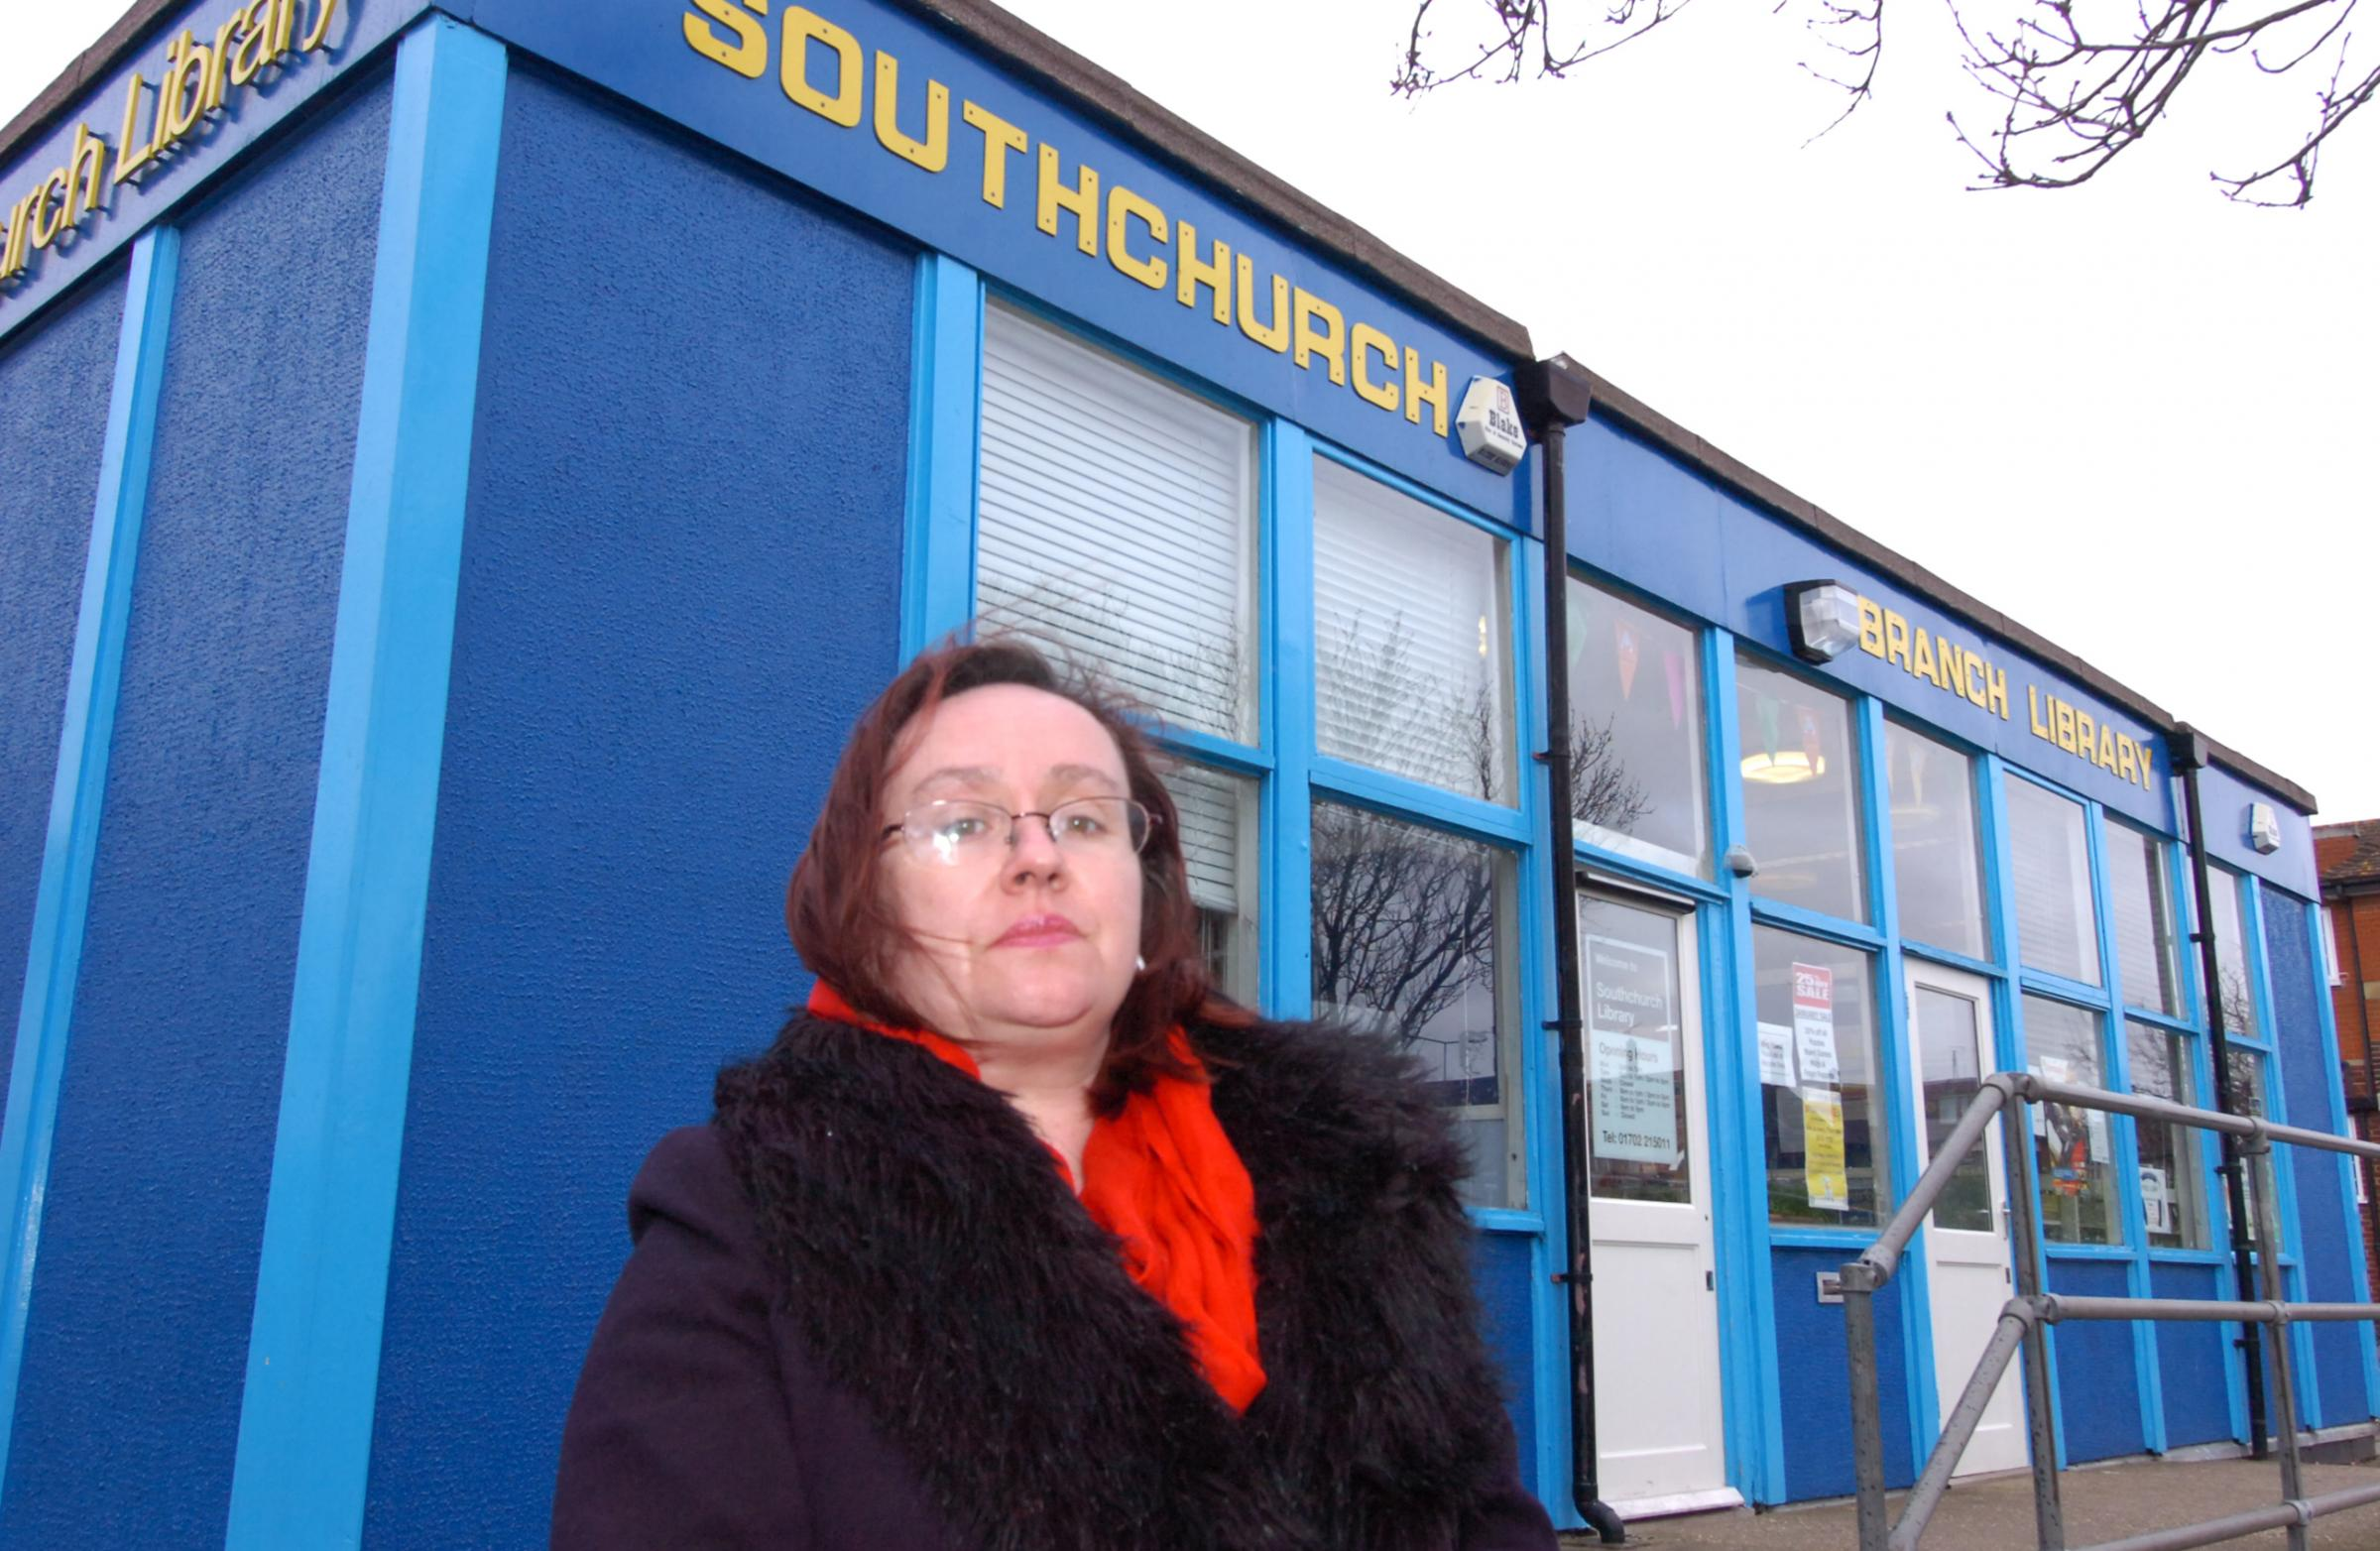 Councillor Anne Jones outside Southchurch Library